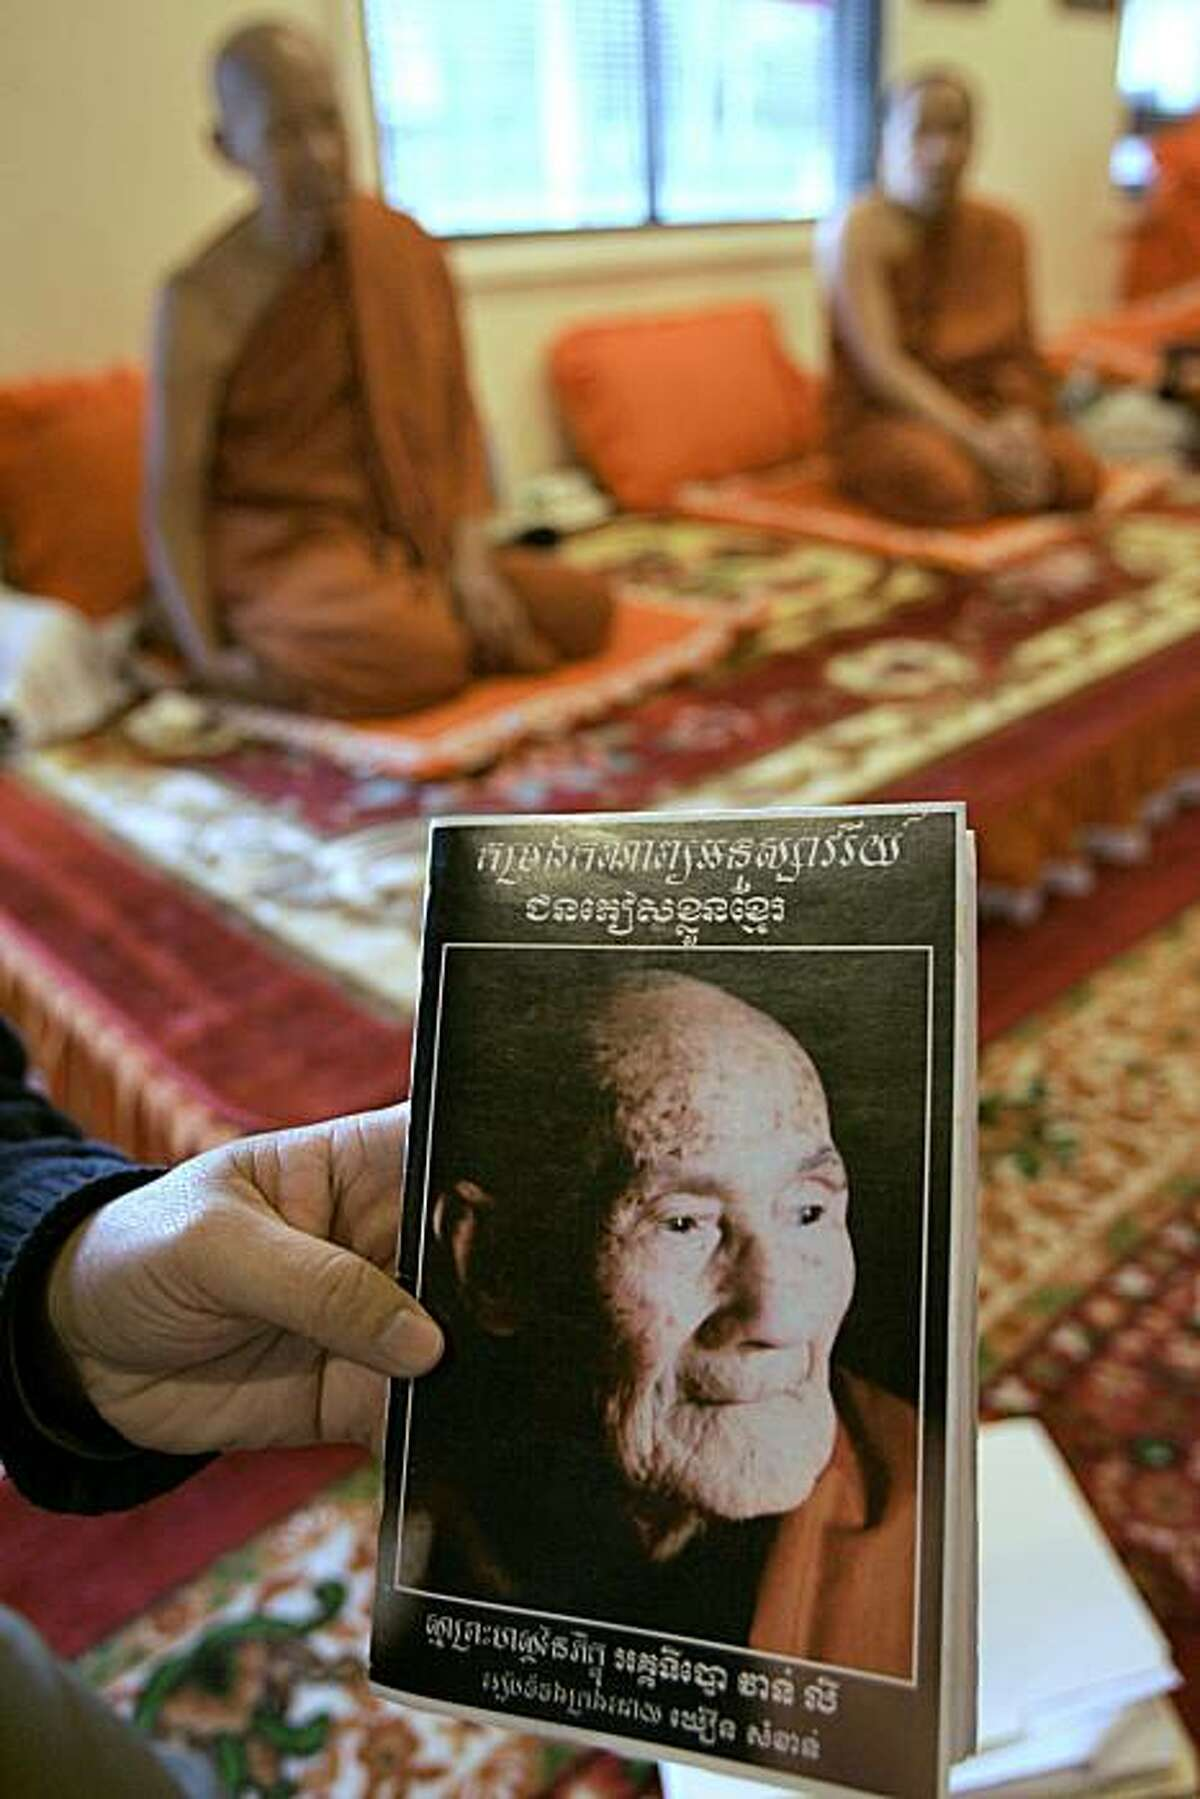 FILE - In this Nov. 20, 2008 file photo, Samkhann Khoeun holds at the Glory Temple, in Lowell, Mass., a Khmer language manuscript of poetry by the Buddhist monk Ly Van Aggadipo that features his photo on the cover. On April 1, 2010, friends and followerswill release a bilingual edition that includes an English translation of his poetry.